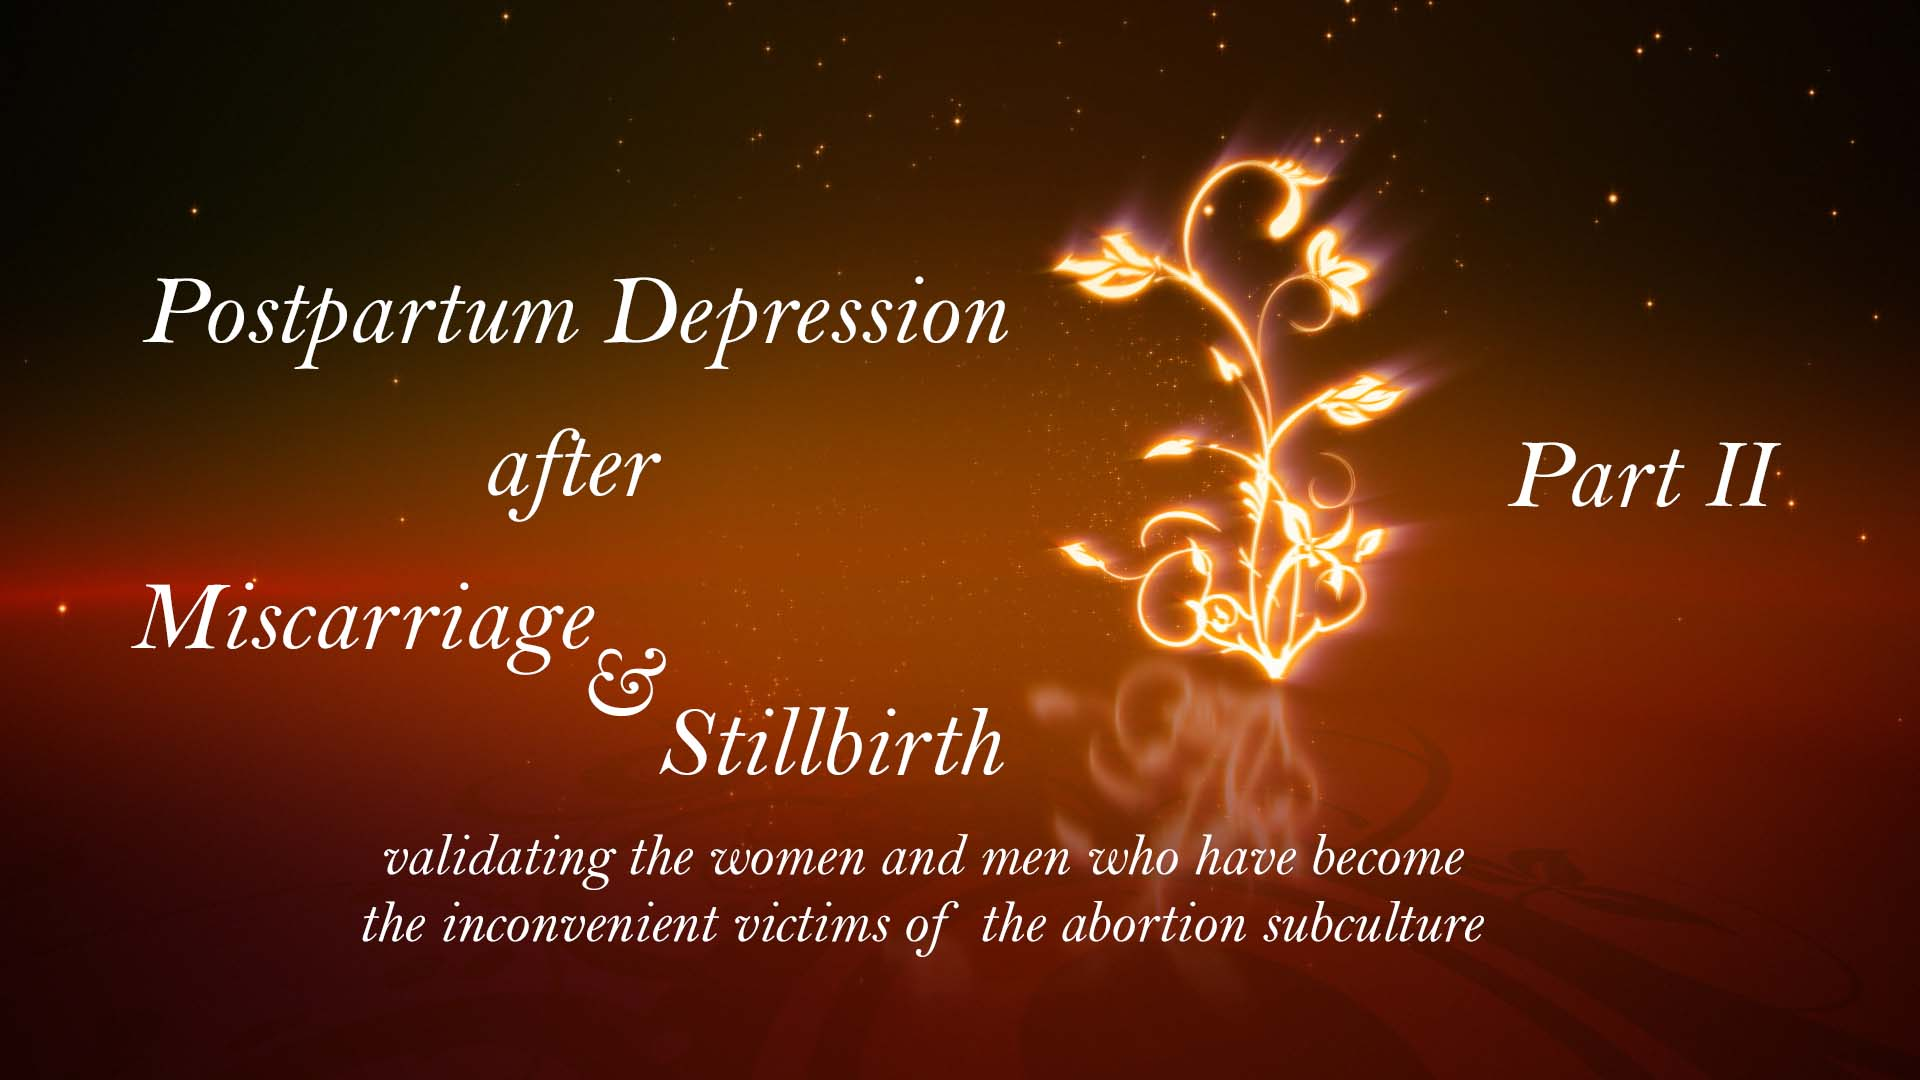 post partum depression in the yellow wallpaper Jane's postpartum depression in the yellow wallpaper the post-partum depression forced her to look for a neurologist doctor who gives a rest cure.